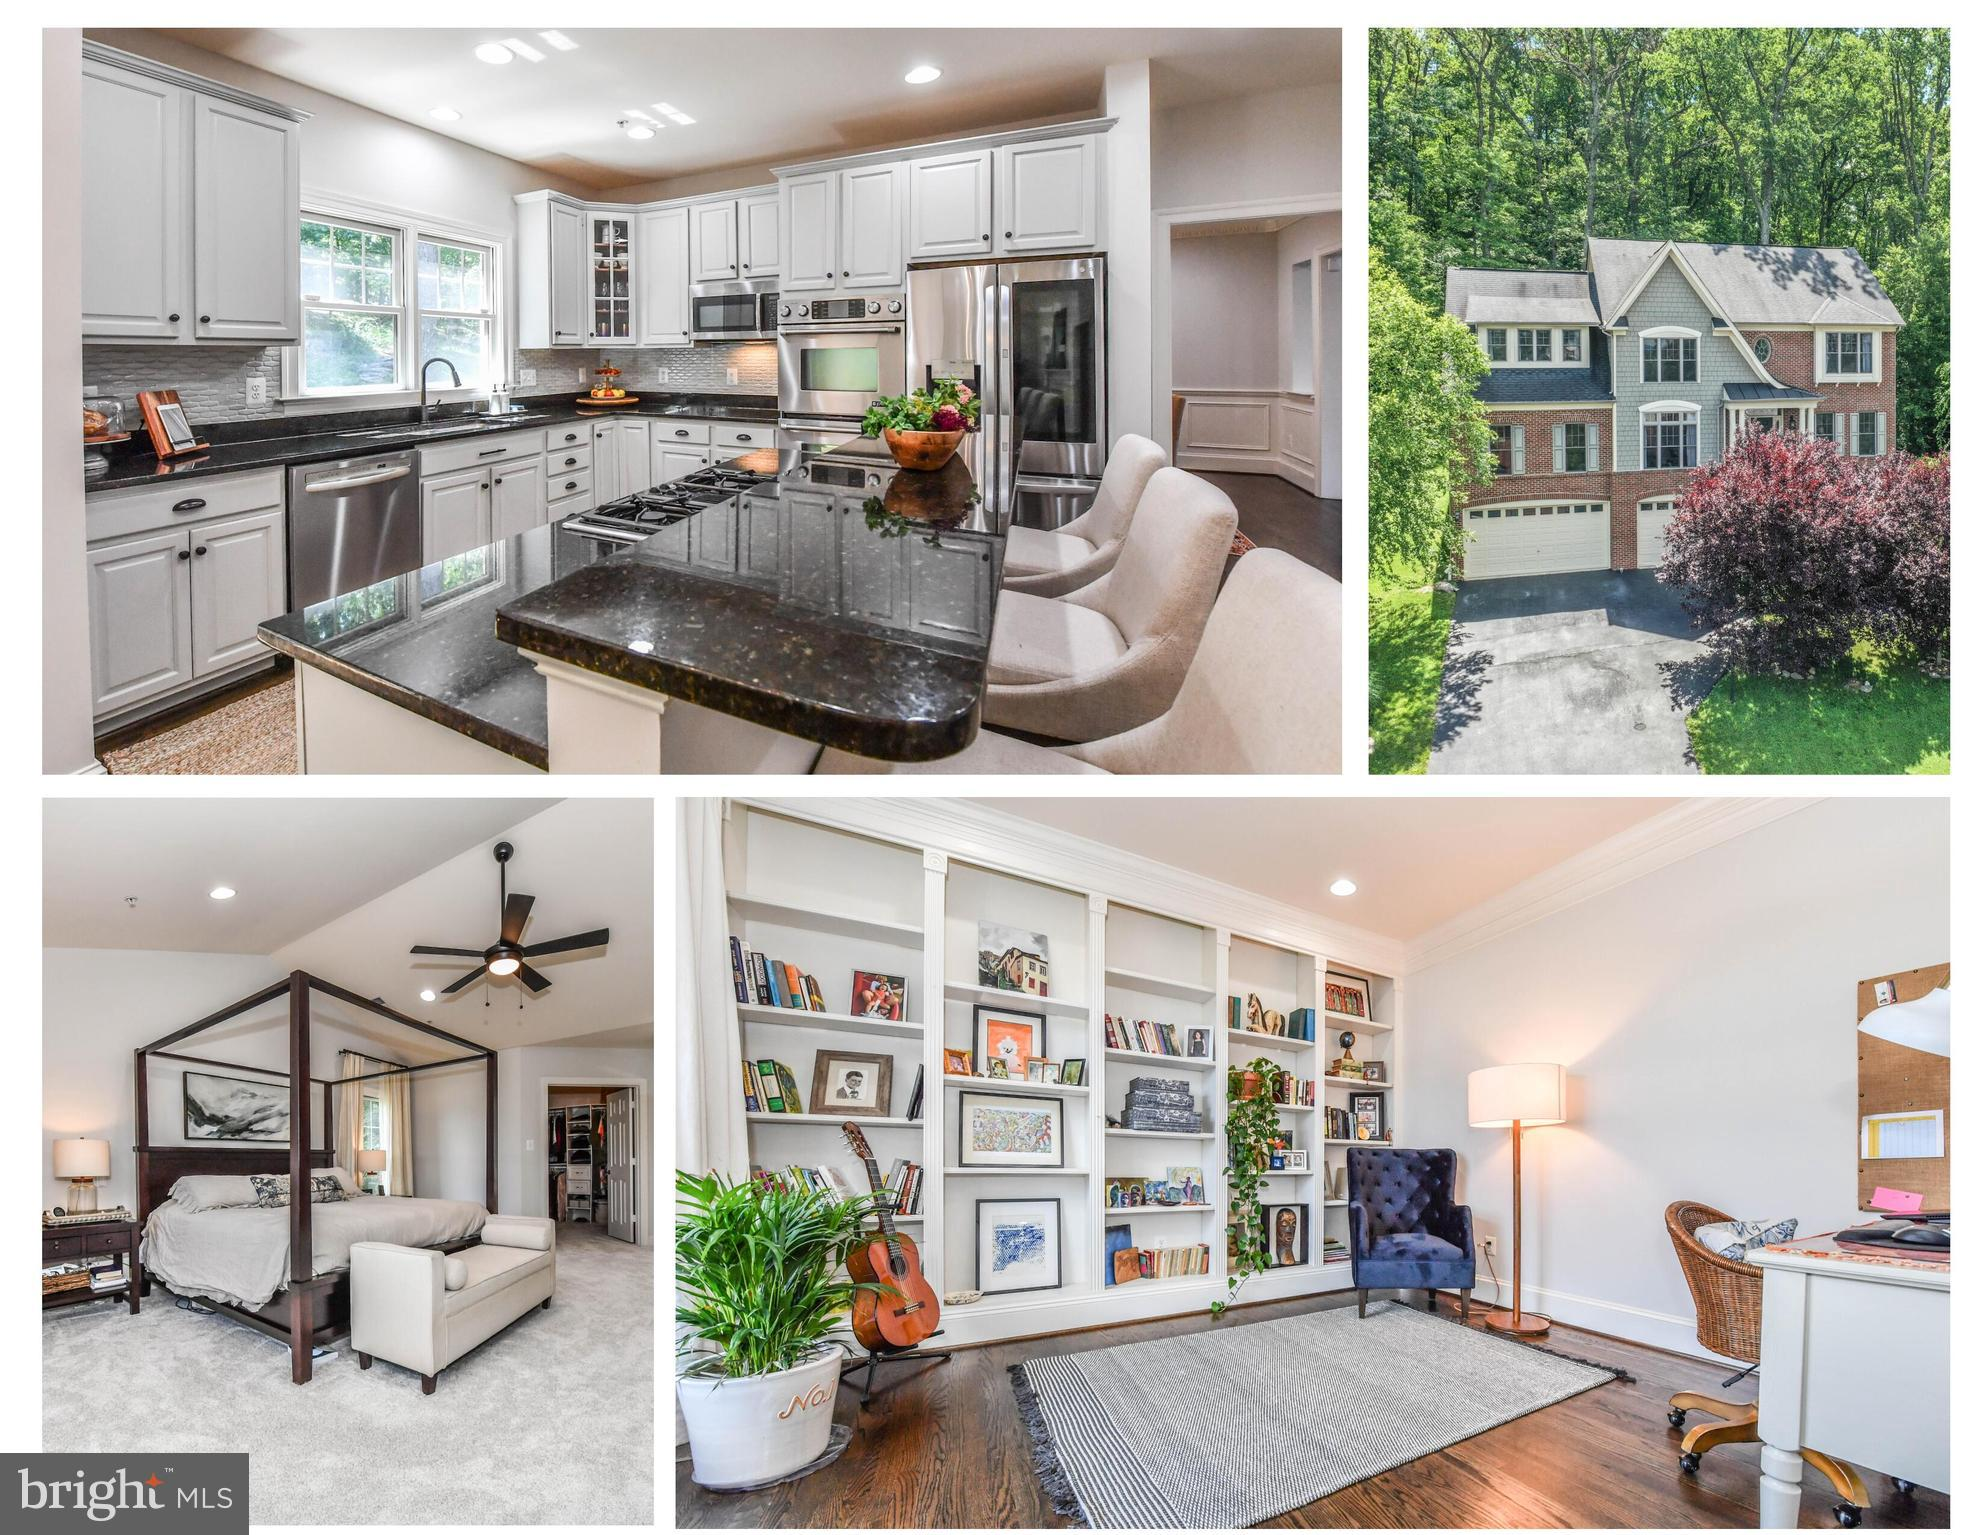 Luxury at its finest! Located at the end of a cul-de-sac in the sought-after Aspen neighborhood in L